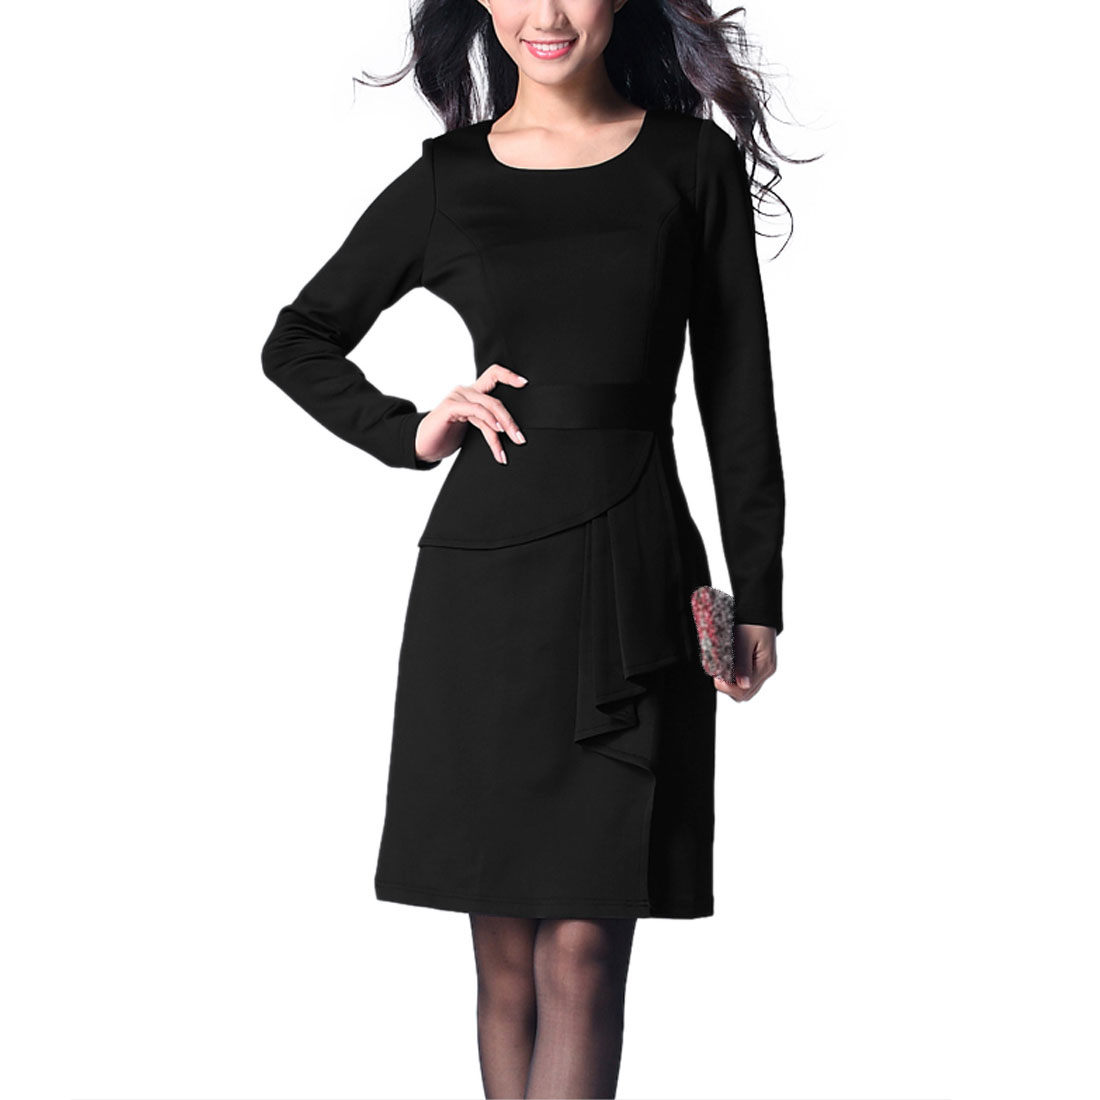 Women Long Sleeves Round Neck Ruffle Decor Dress Black S